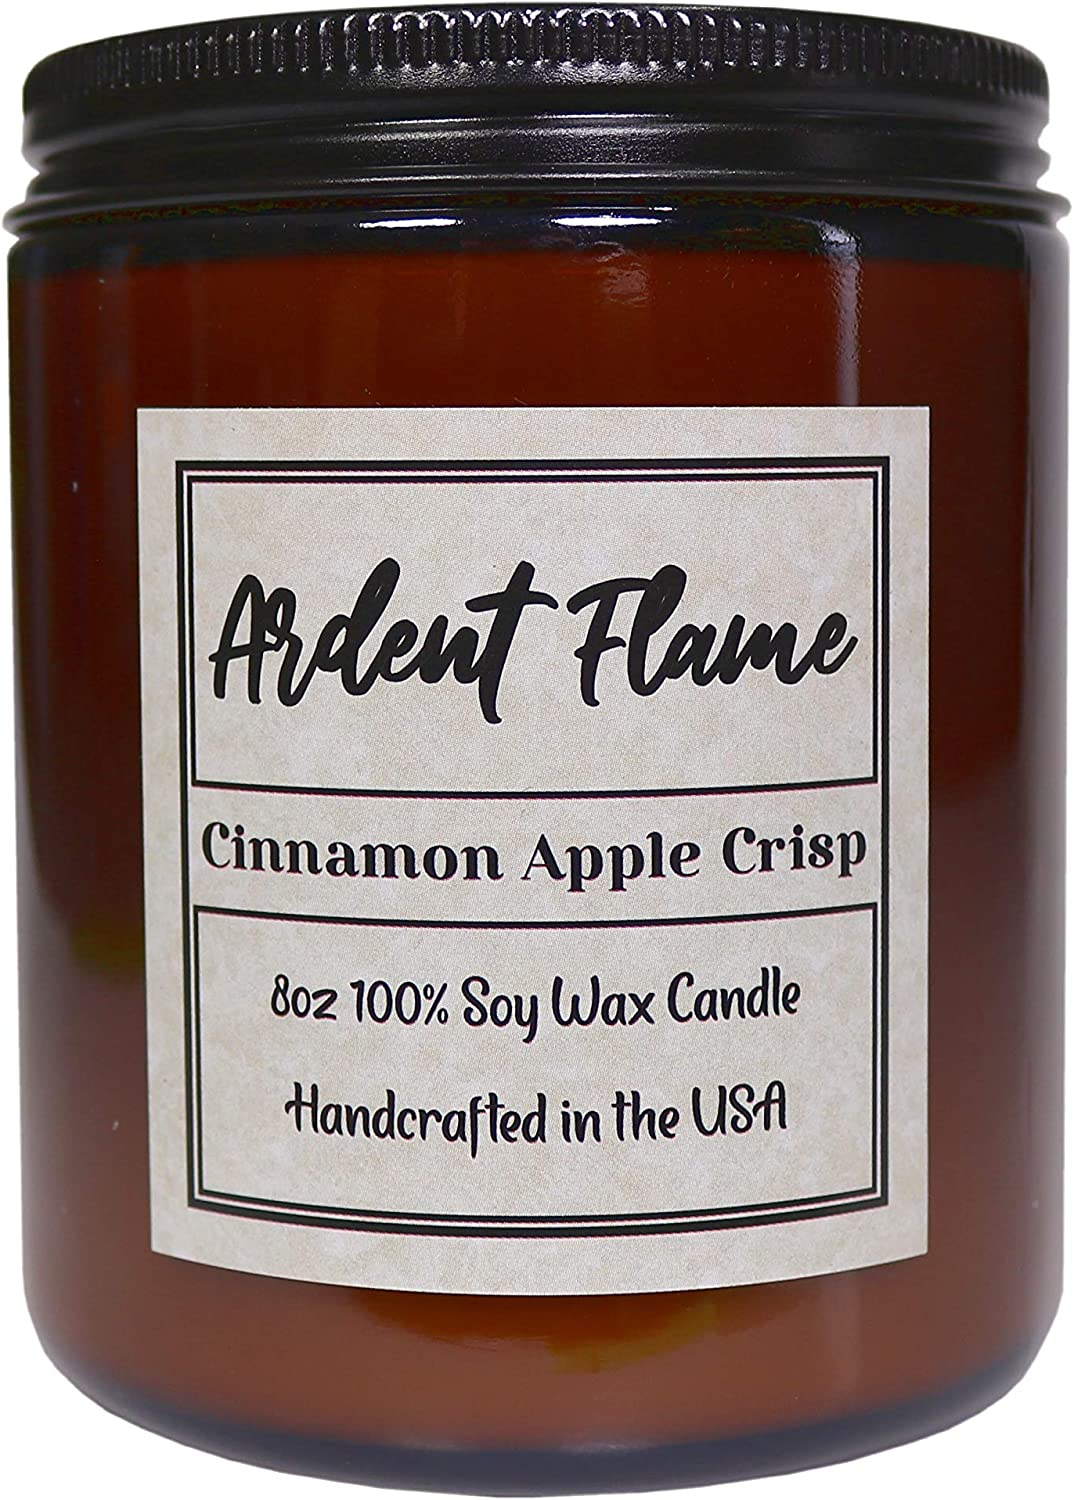 Ardent Flame Candles | Cinnamon Apple Crisp | 100% Natural Soy Wax Candle for Home Decor | Highly Scented | Premium Fragrance | Handmade in The USA | 8 oz | Long Lasting | Gift for Women and Men